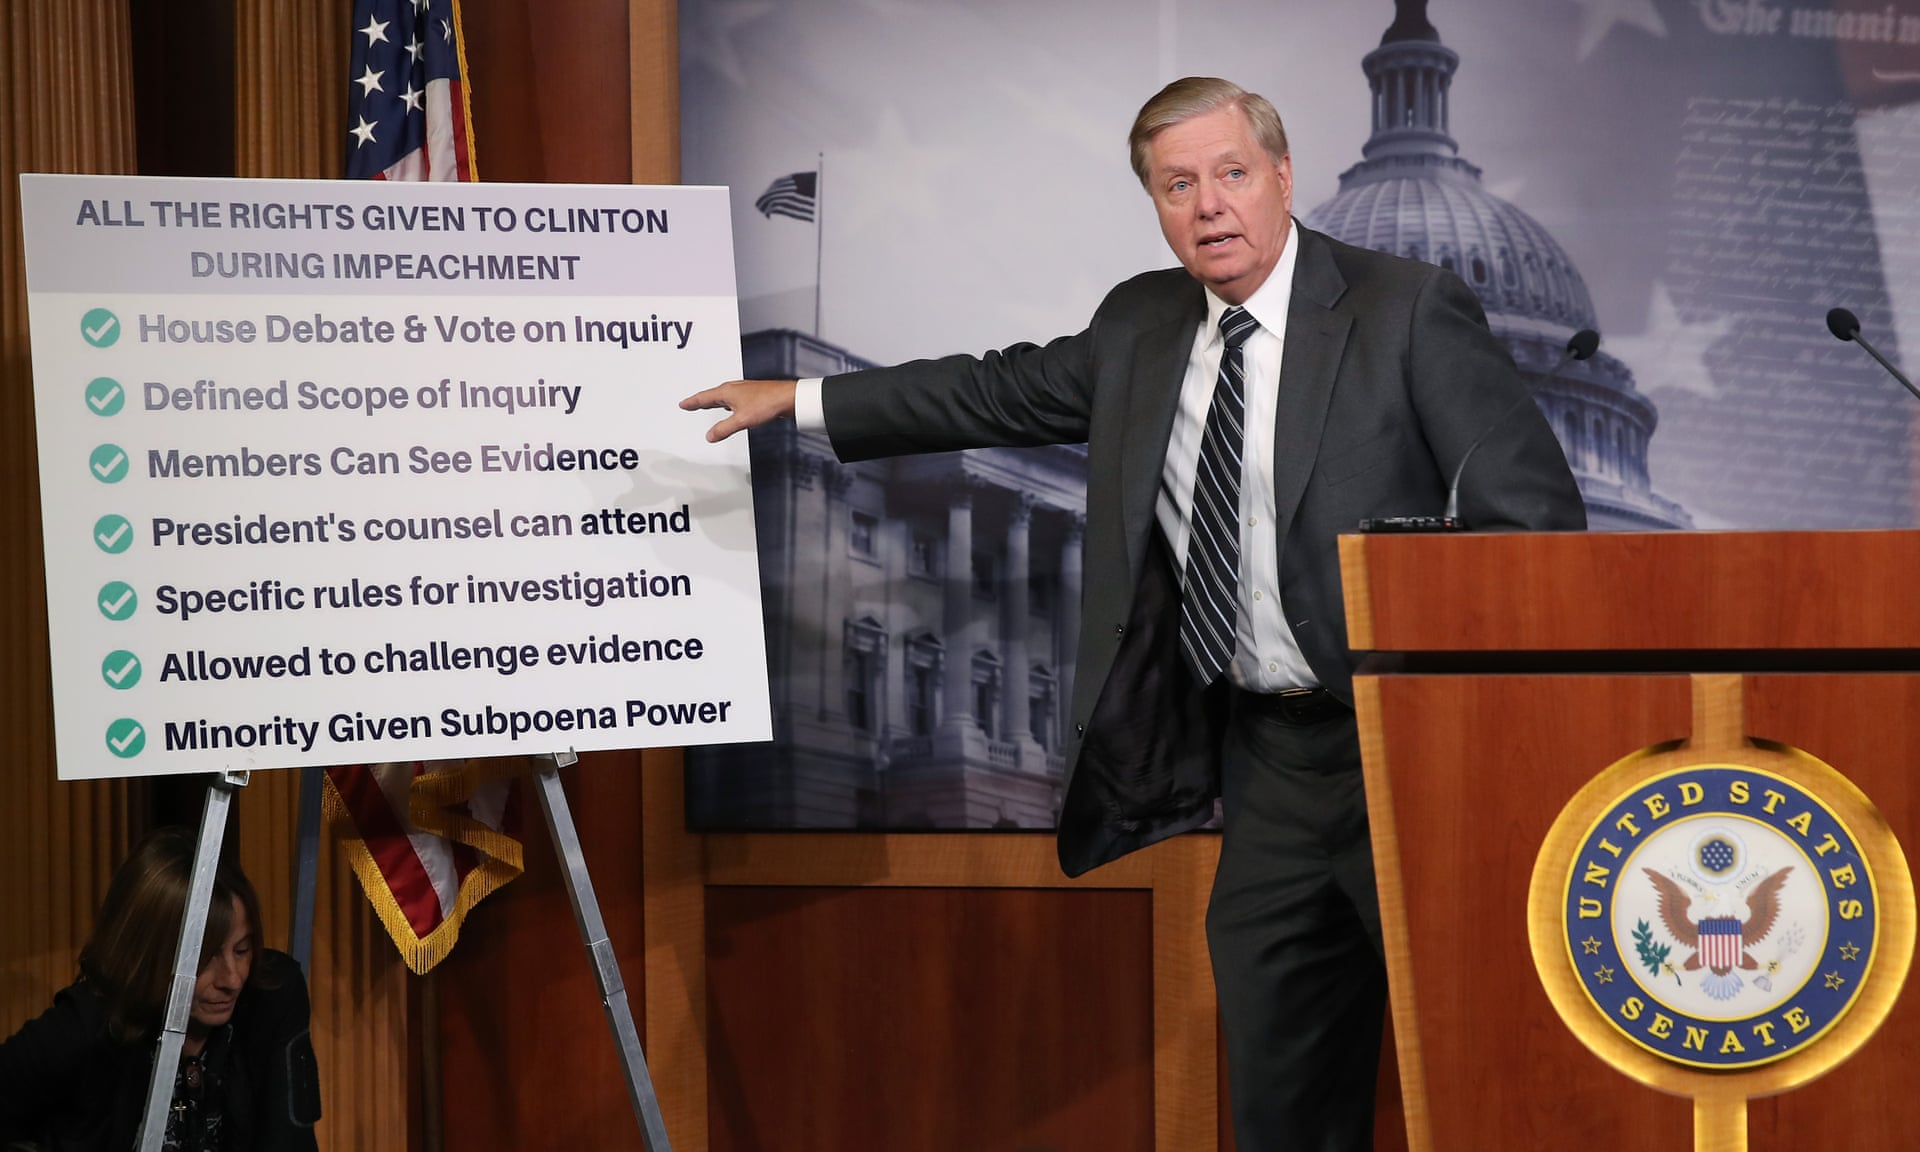 Lindsey Graham talks about the Clinton impeachment while introducing a resolution condemning the House impeachment inquiry. — Photograph: Mark Wilson/Getty Images.